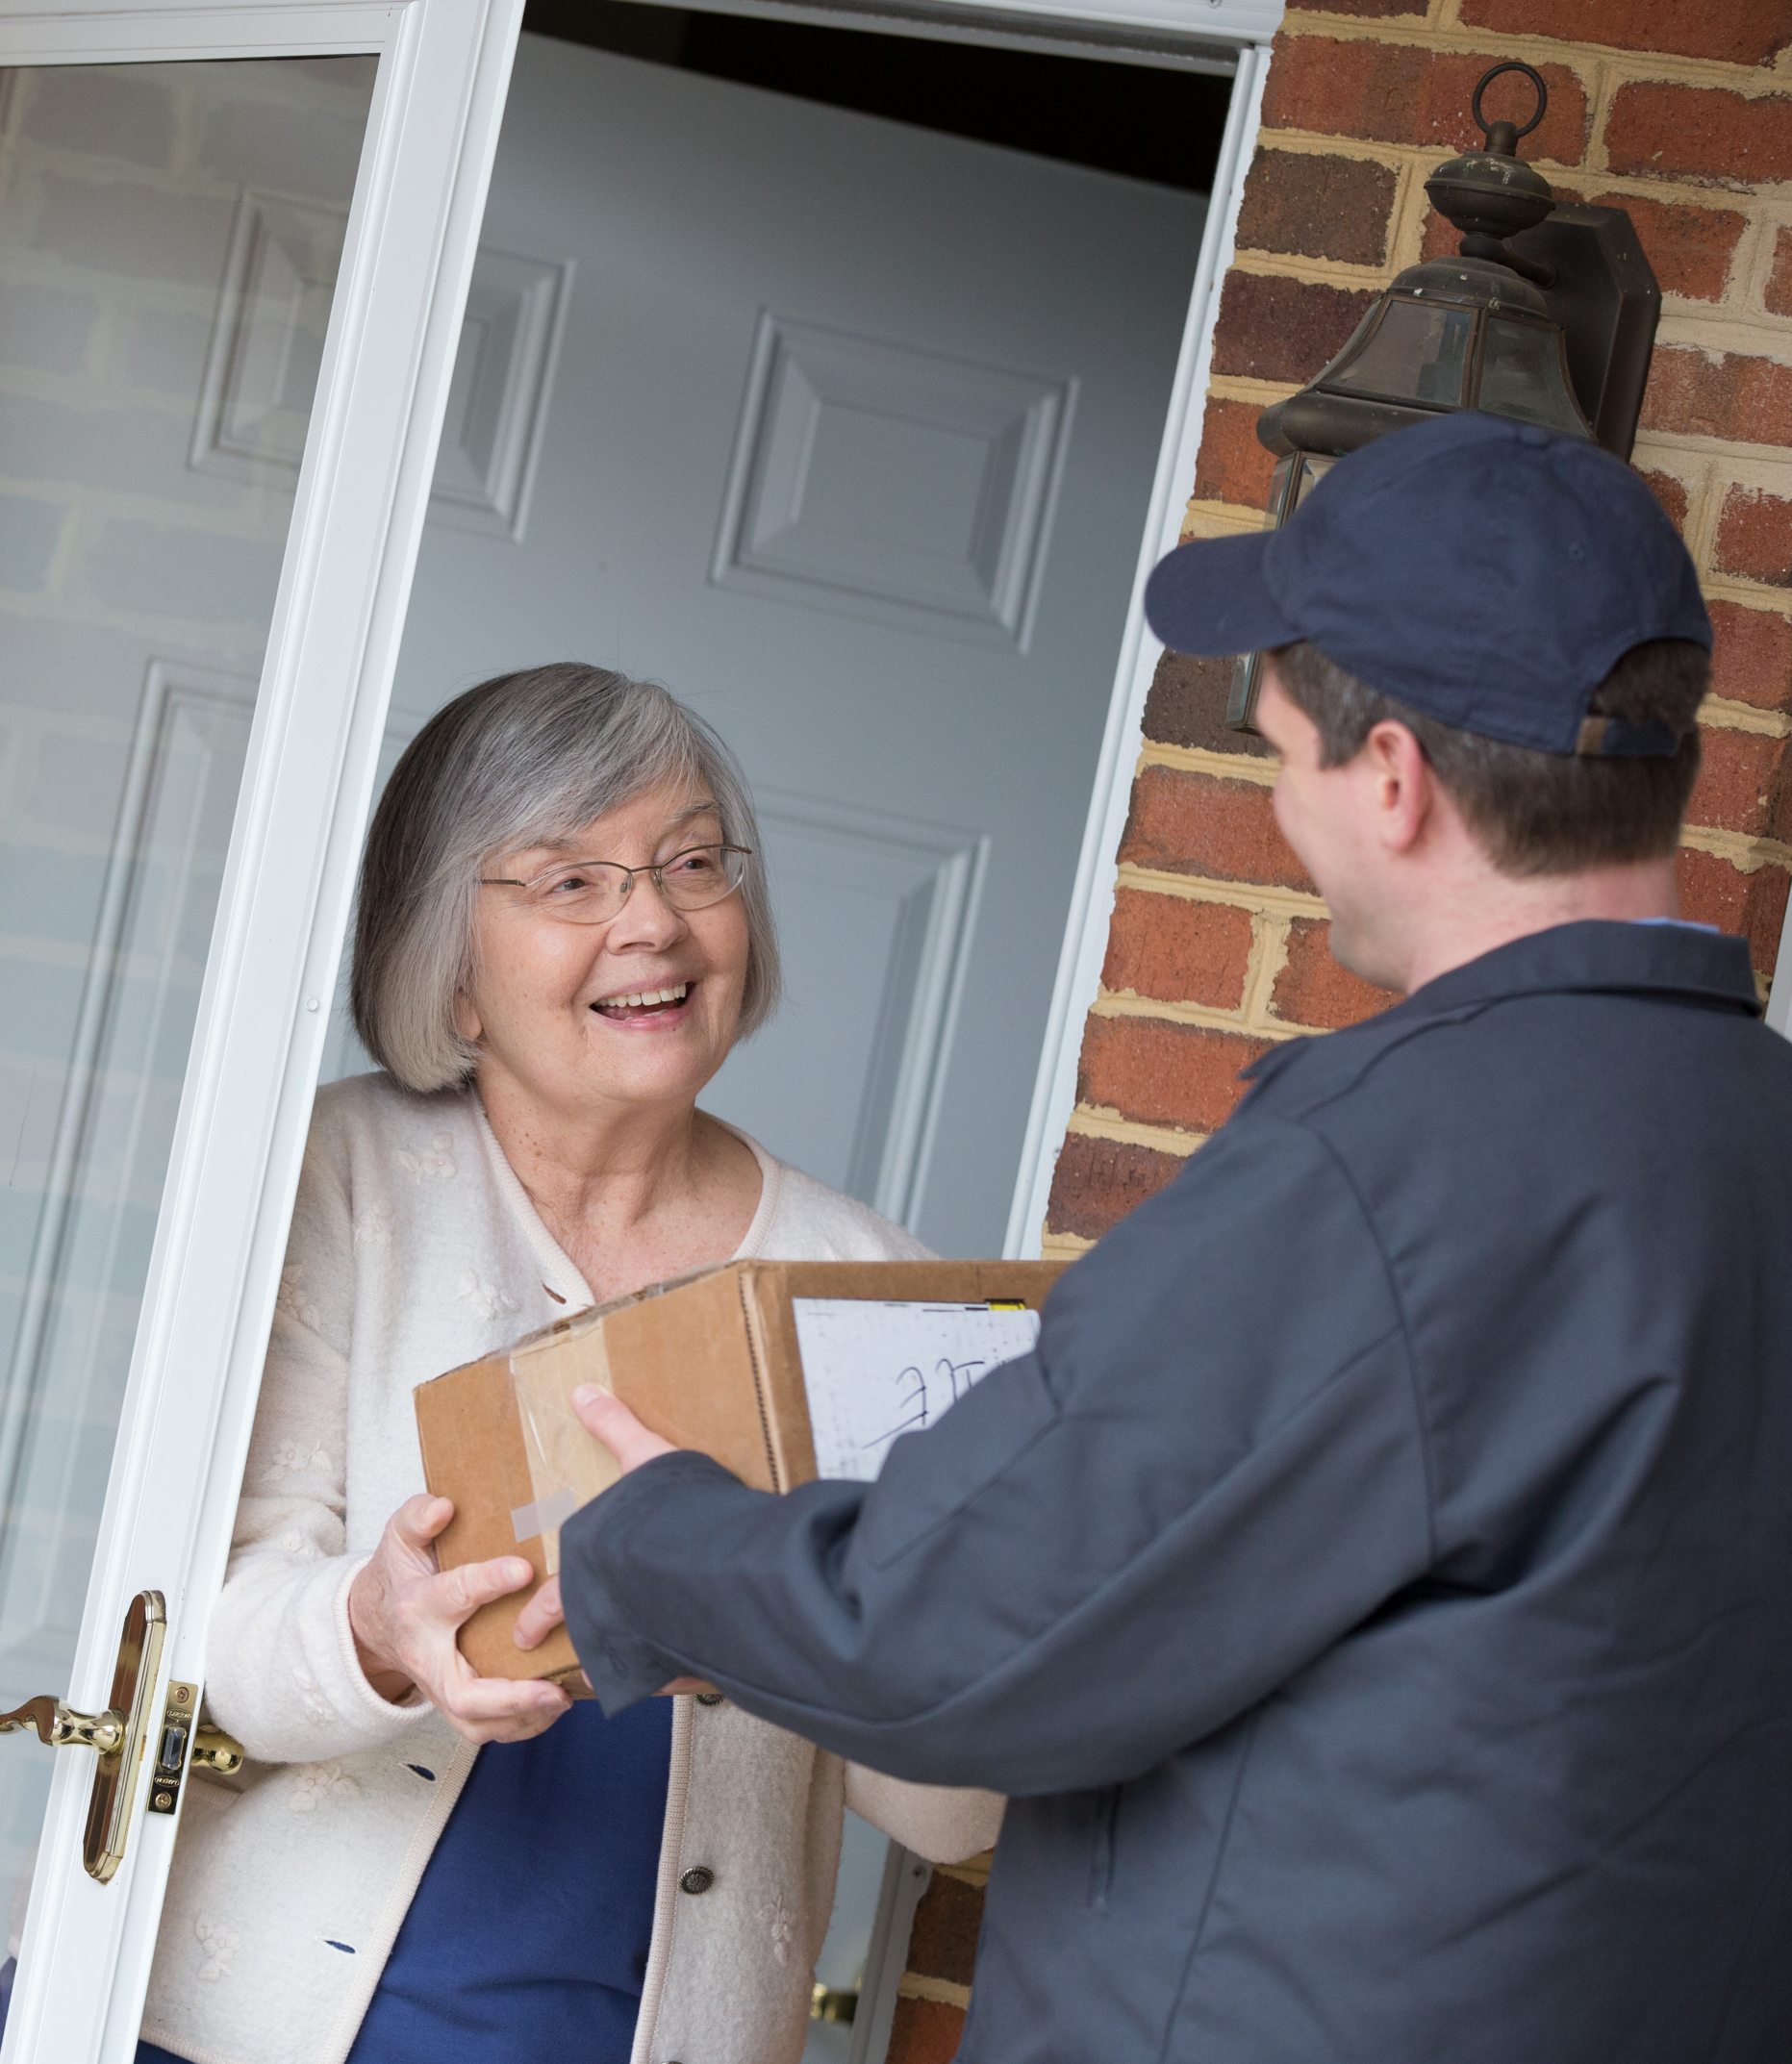 Biologics by Mckesson helps streamline home delivery logistics